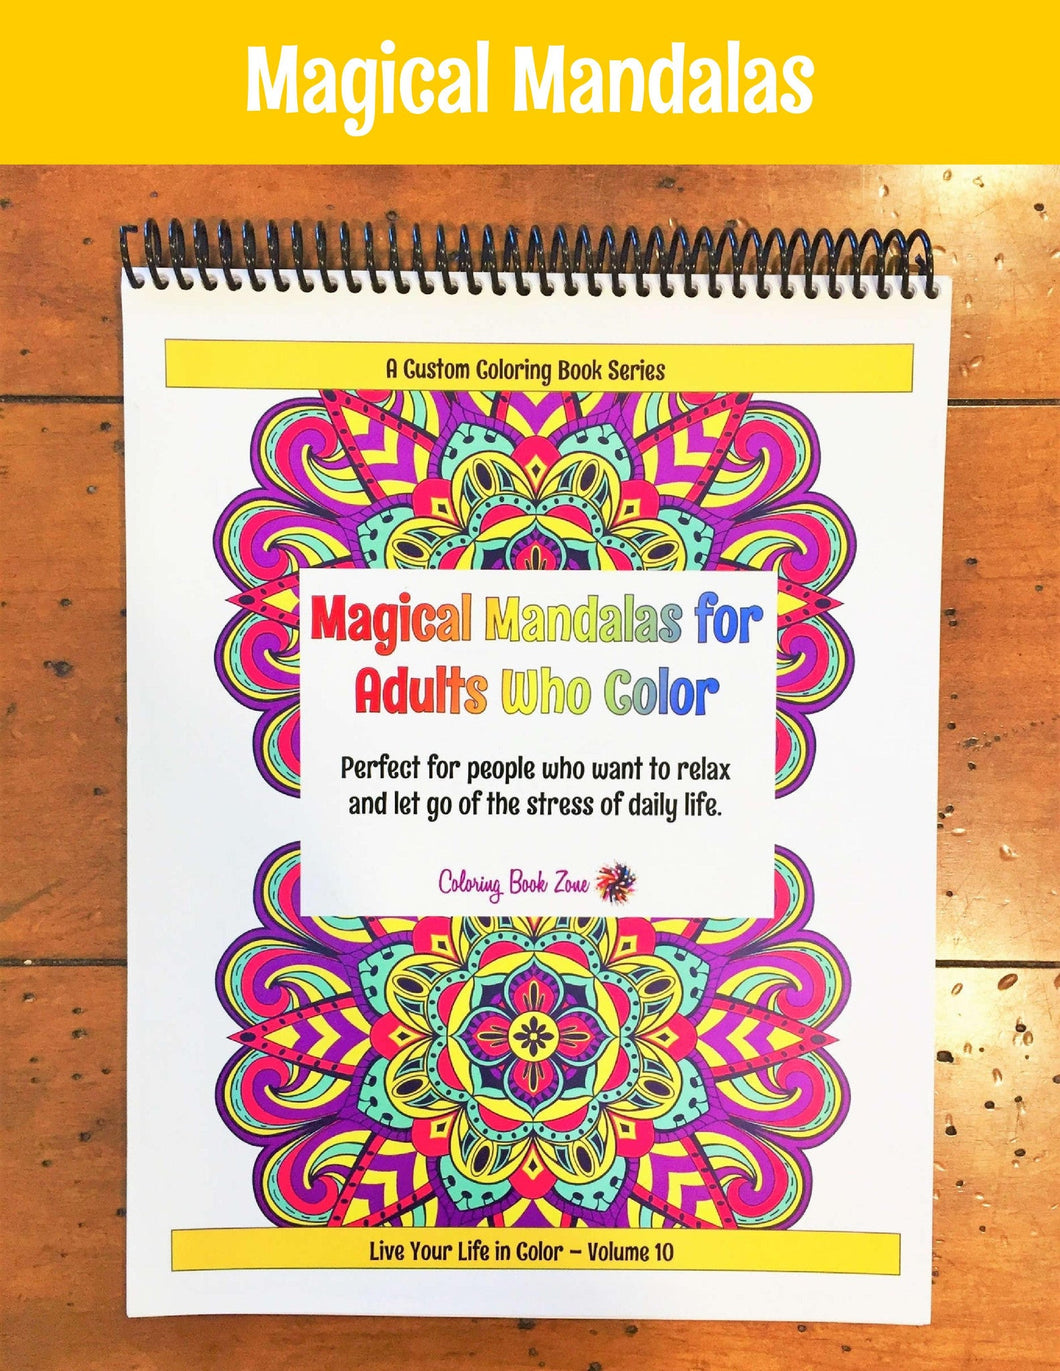 Magical Mandalas for Adults Who Color - Live Your Life in Color Series, Vol. 10 - Coloring Book Zone